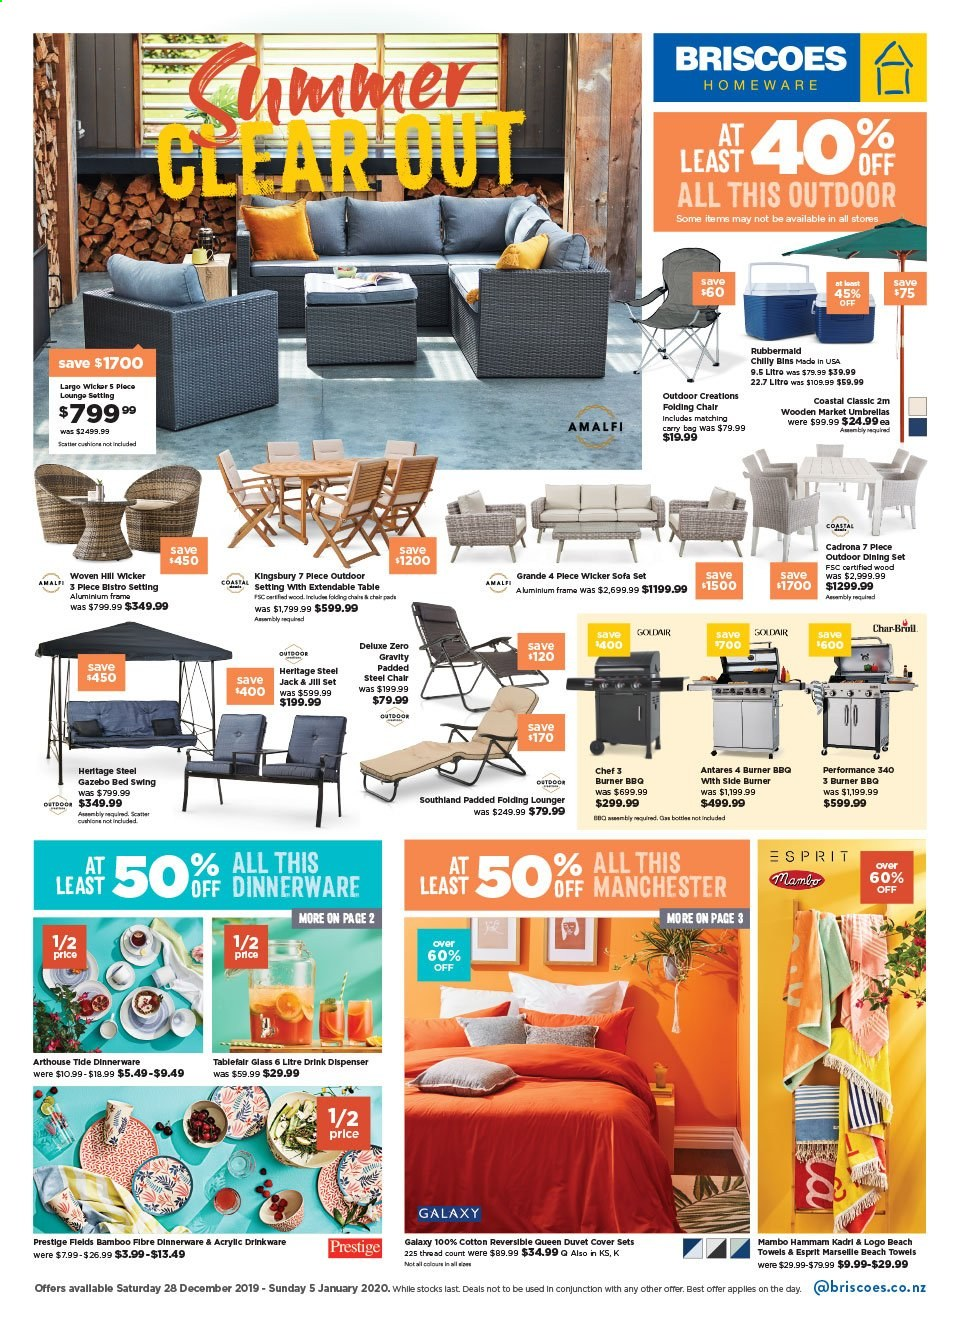 Briscoes mailer - 28.12.2019 - 05.01.2020 - Sales products - dining set, extendable table, table, sofa, bed, dinnerware set, drinkware, dispenser, duvet, gas grill, aluminium frame, apples, carry bag, Samsung Galaxy. Page 1.